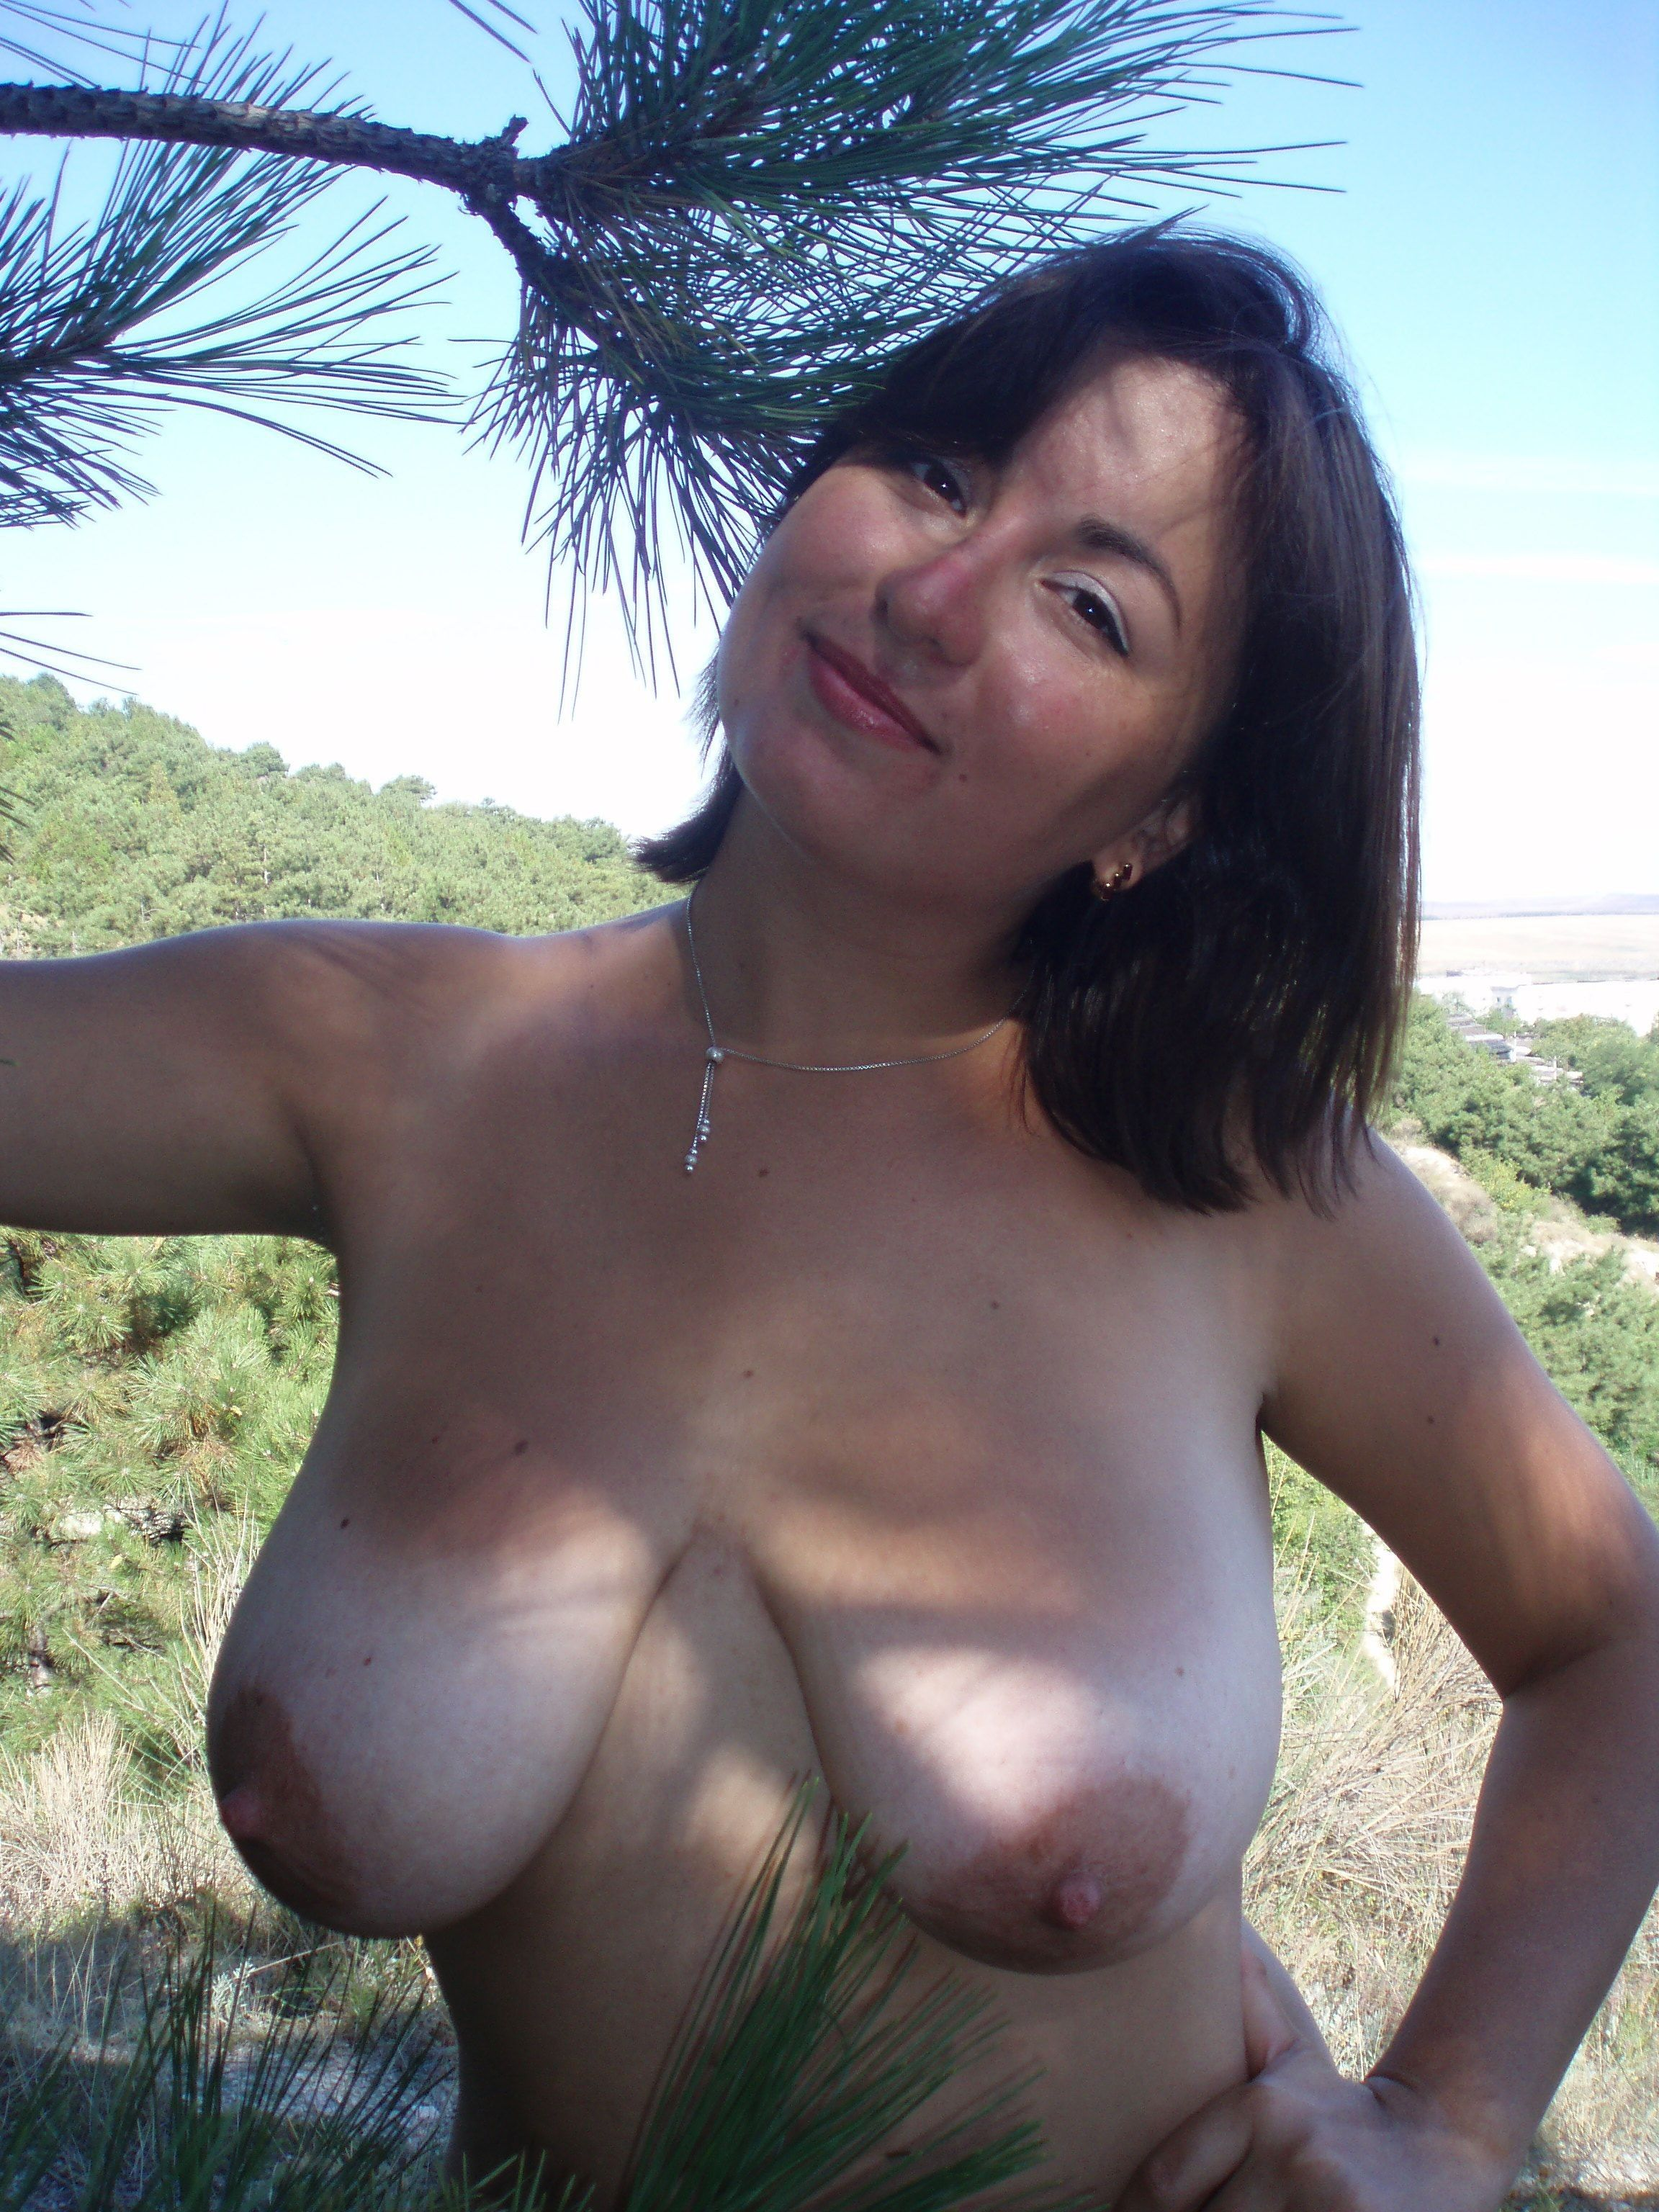 Nudist in nature photos